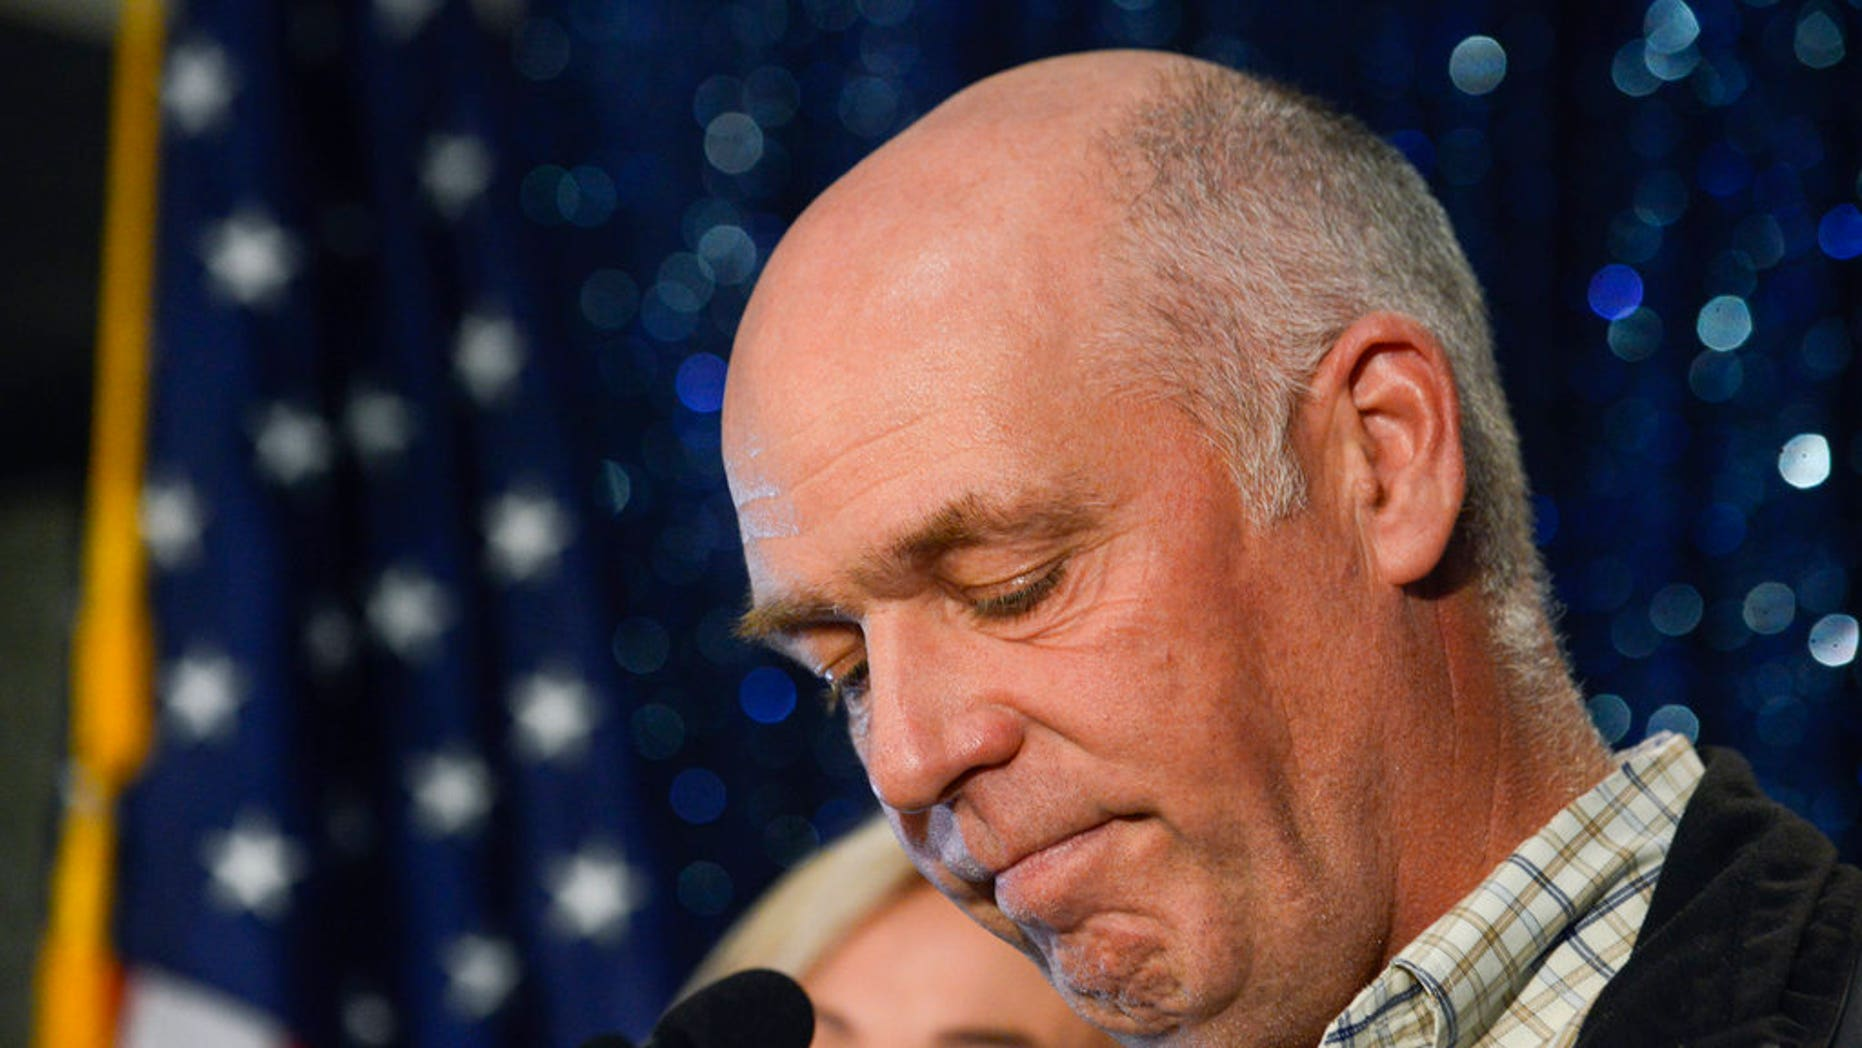 Republican Greg Gianforte defeated his Democratic challenger Thursday in Montana's special House election. Just a day earlier, Gianforte was charged with a misdemeanor assault after witnesses said he grabbed a reporter by the neck and threw him to the ground.